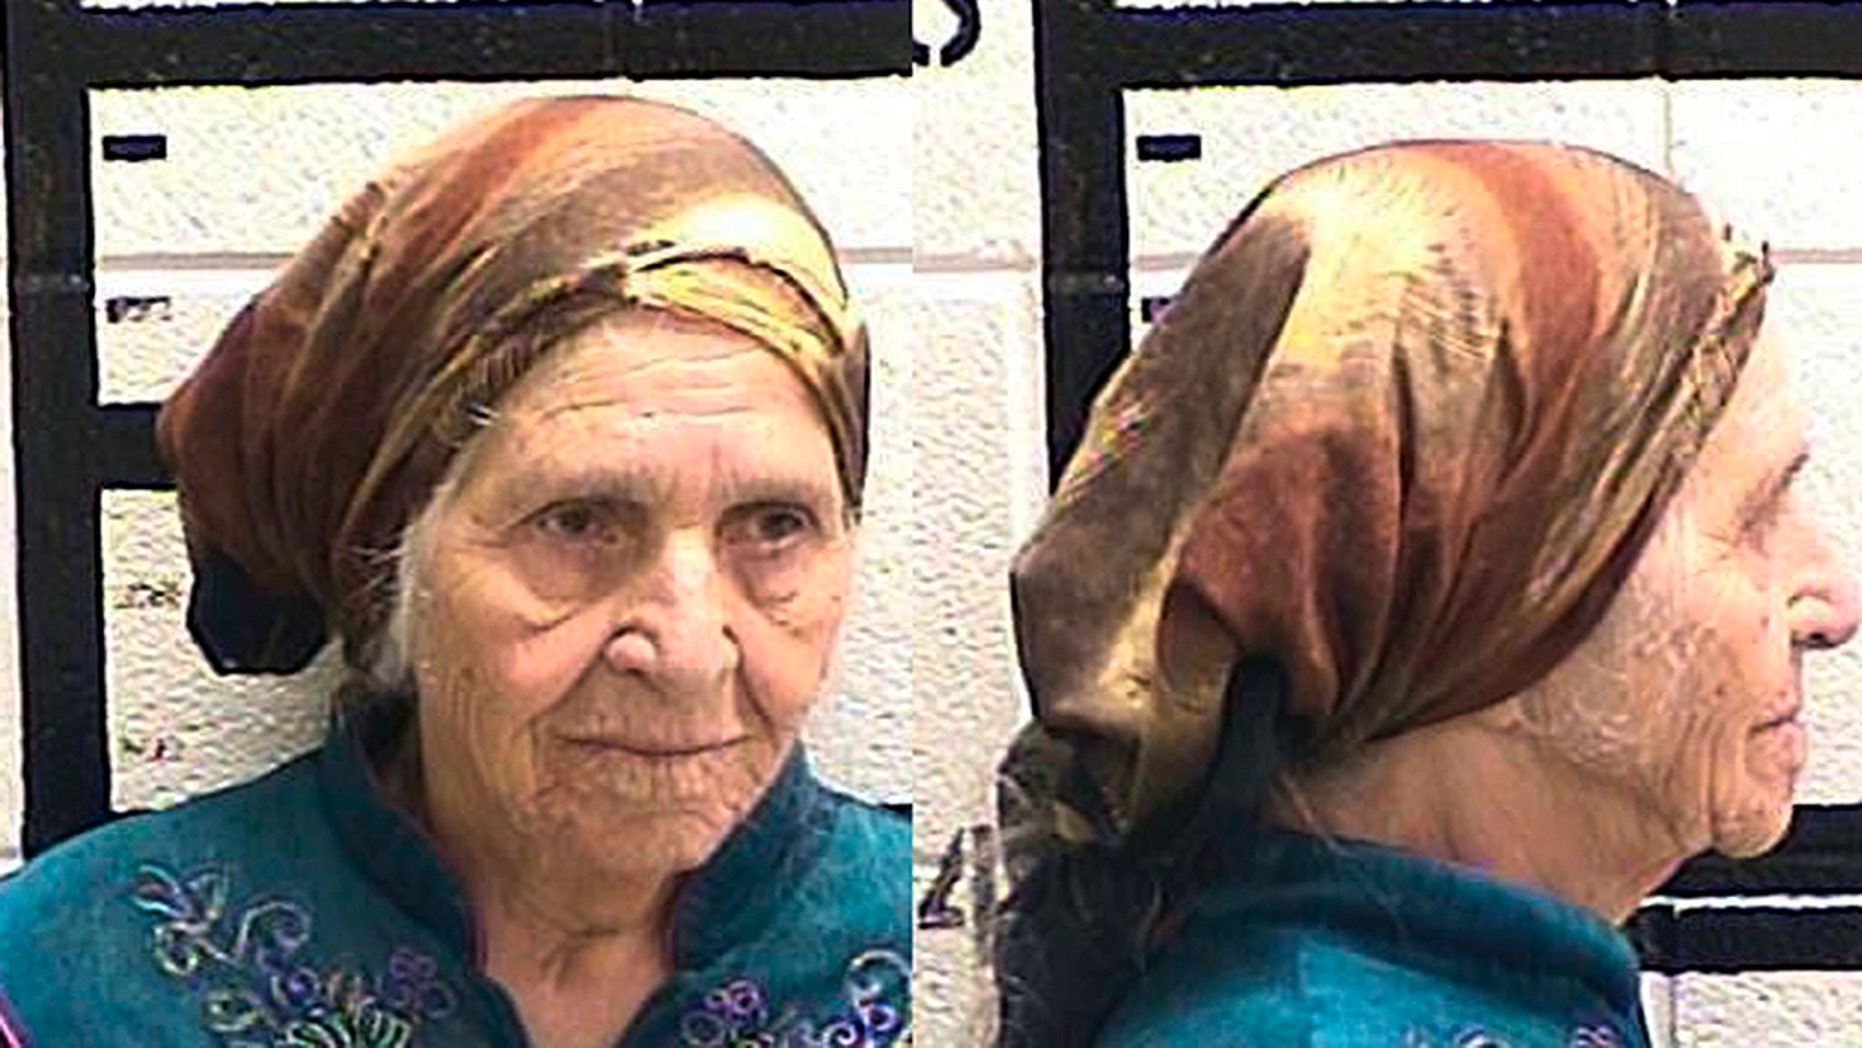 This Friday, Aug. 10, 2018 photo released by the Murray County Jail shows Martha Al-Bishara, 87, under arrest.